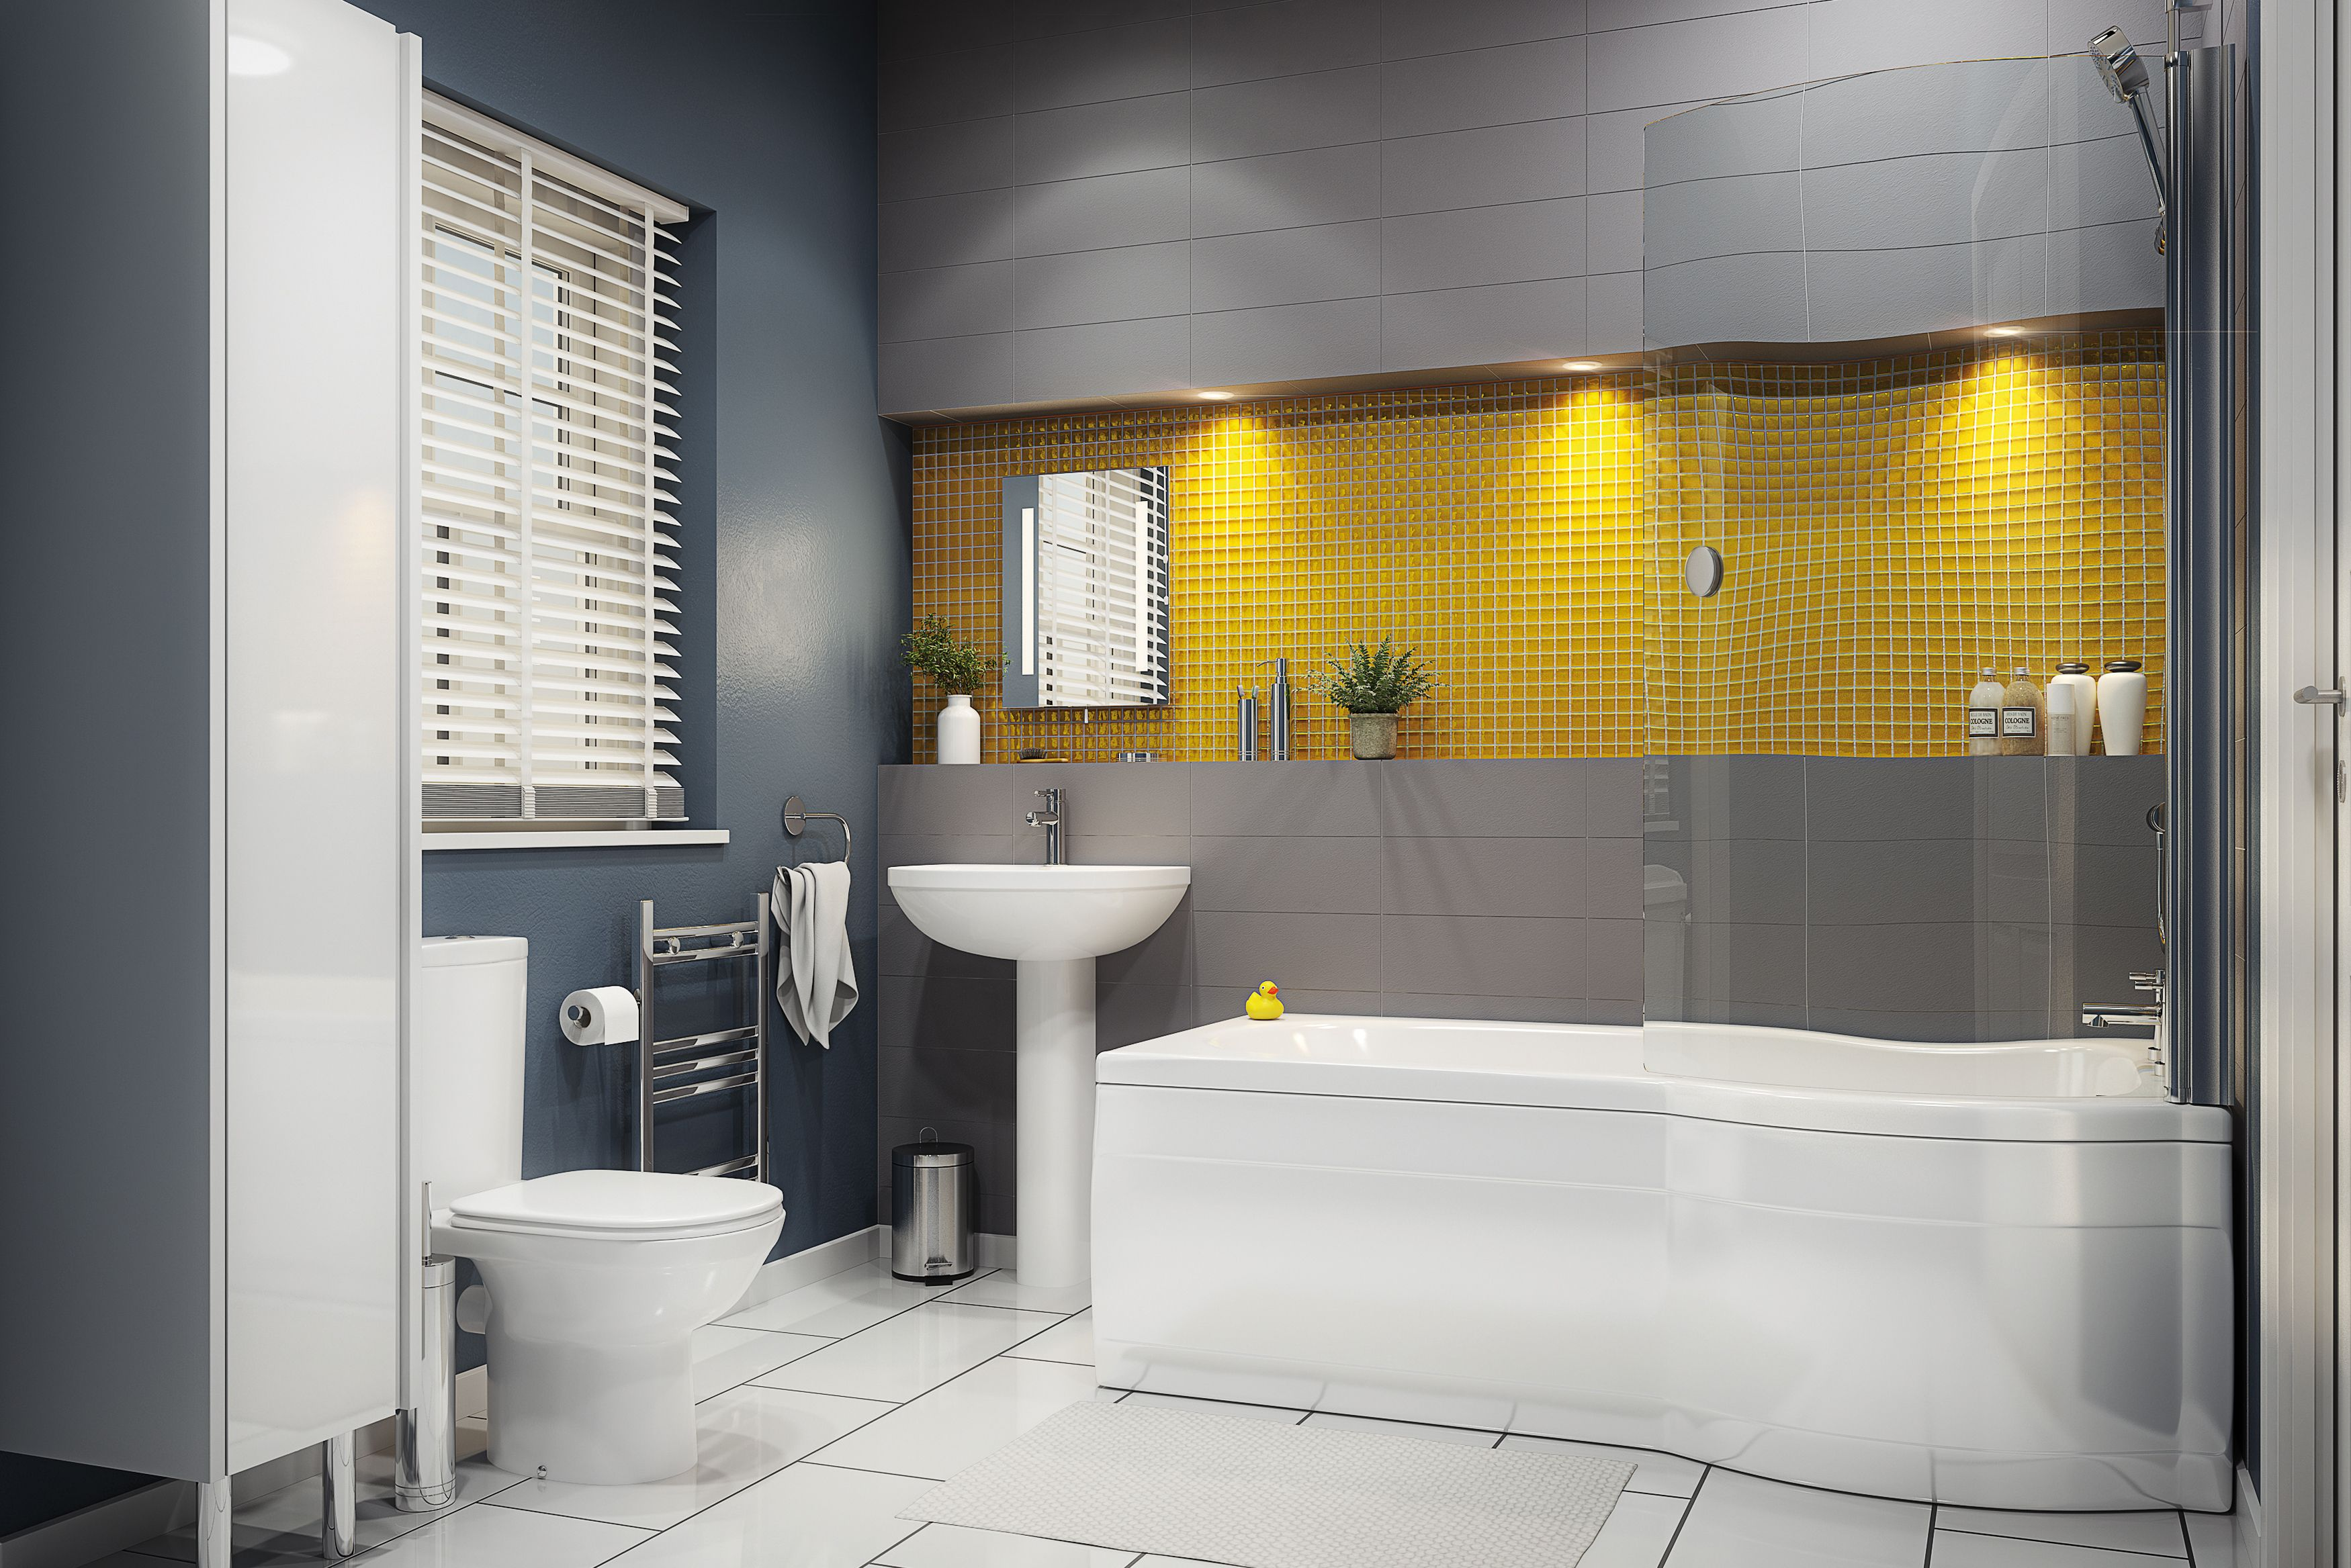 Your bathroom in lights - A guide to lighting your ...